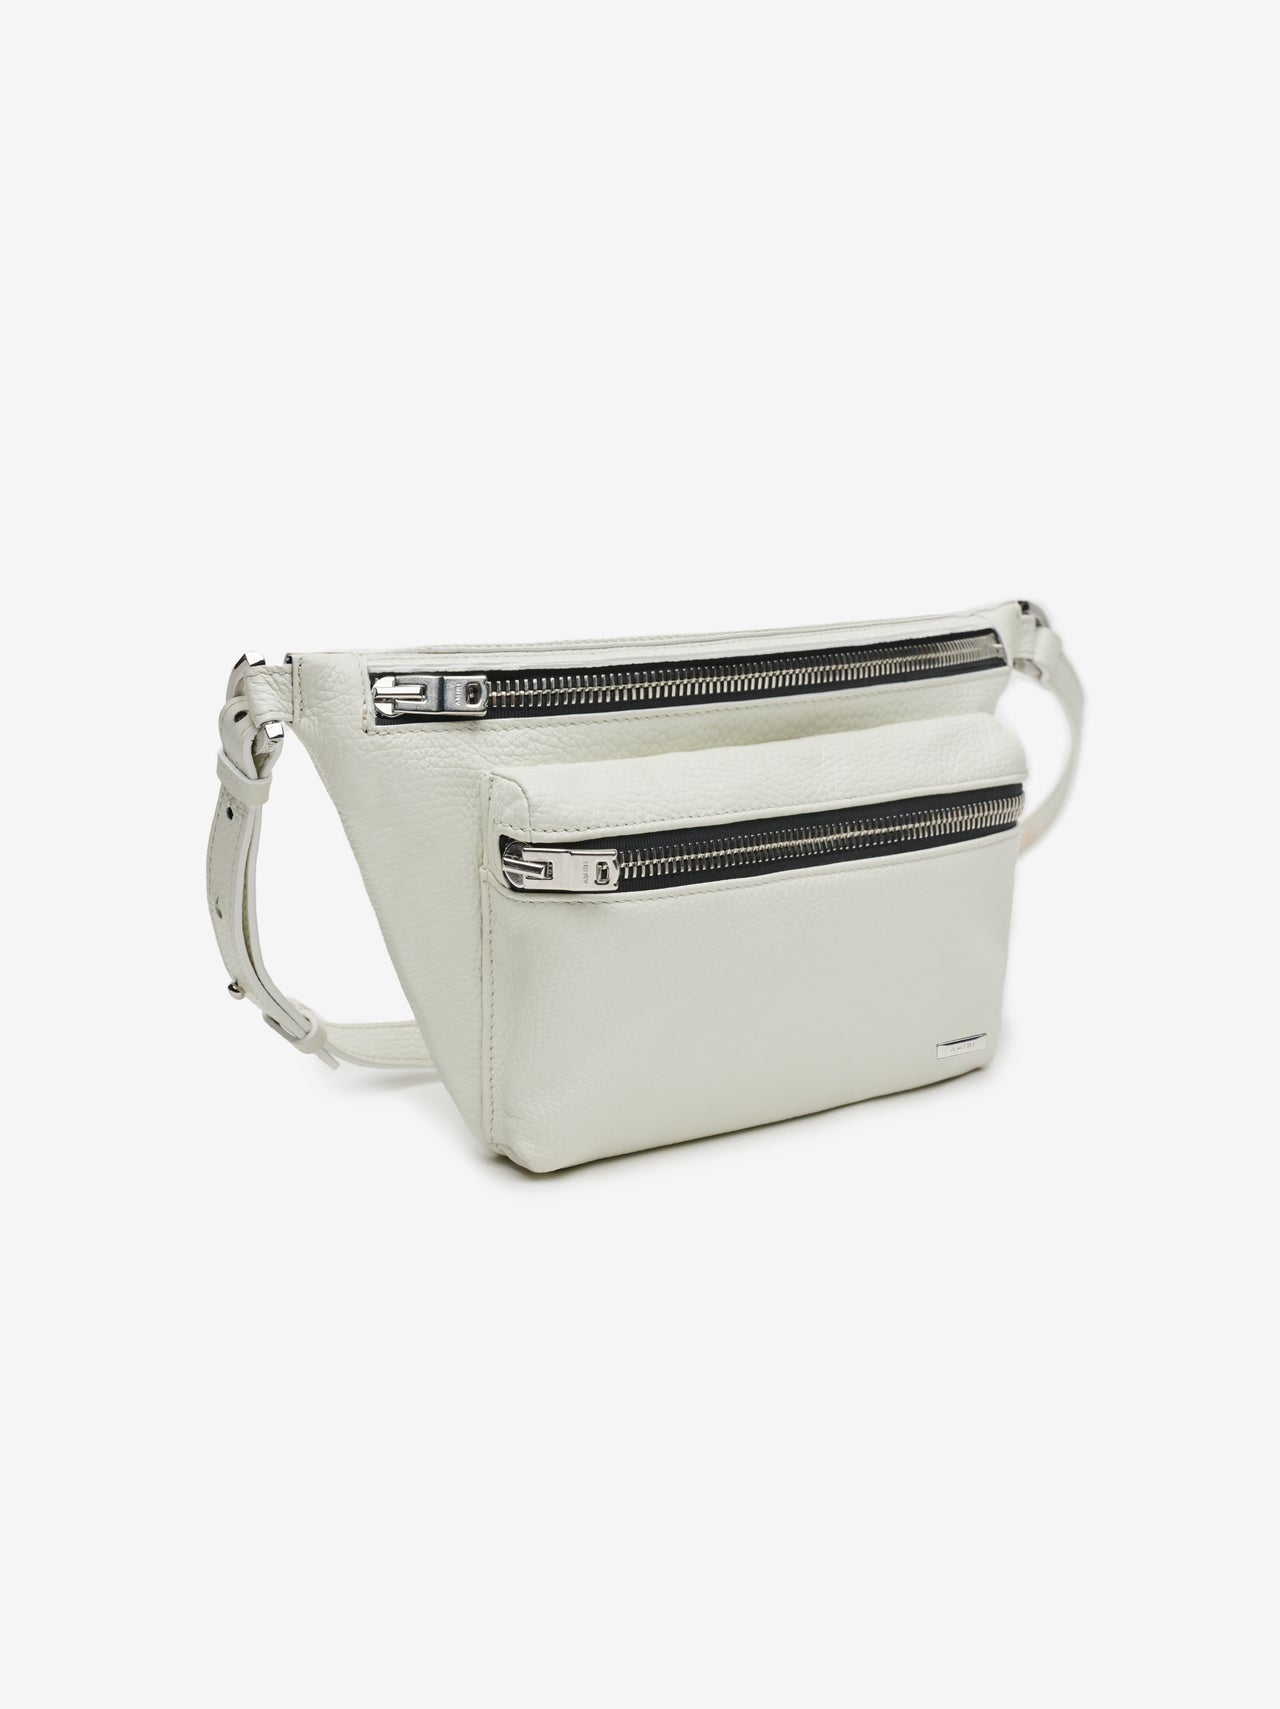 LEATHER BUMBAG - White